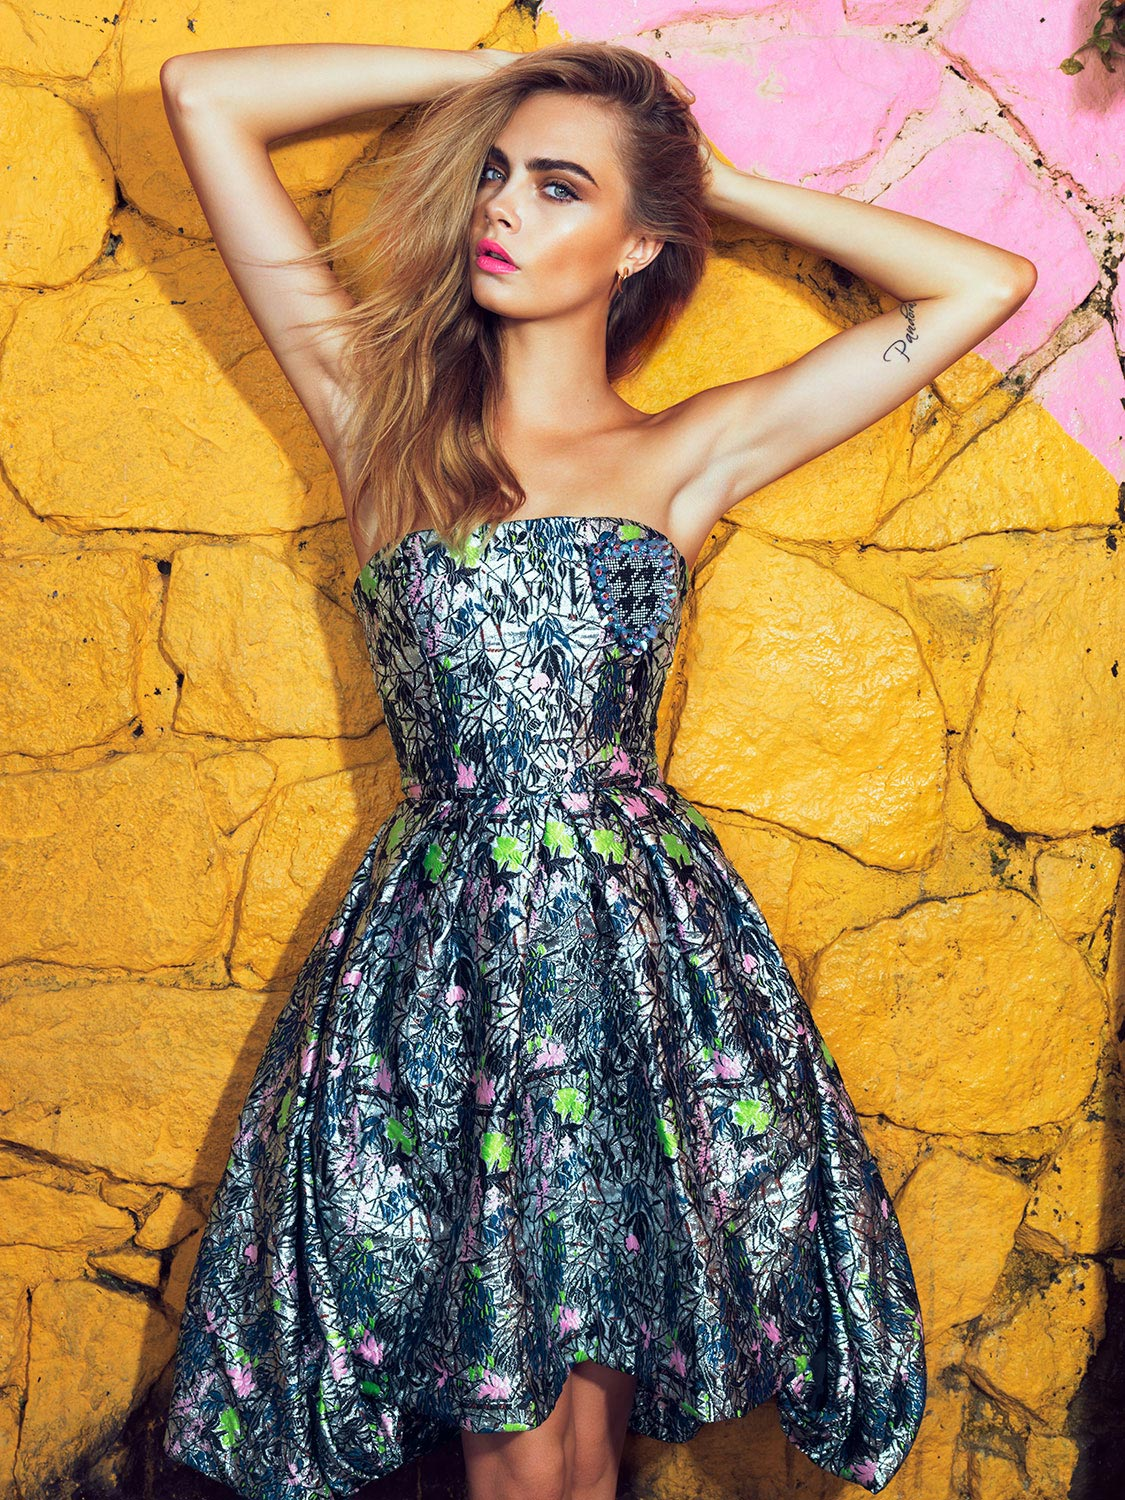 Cara Delevingne Photoshoot For Vogue Magazine Brazil 2014